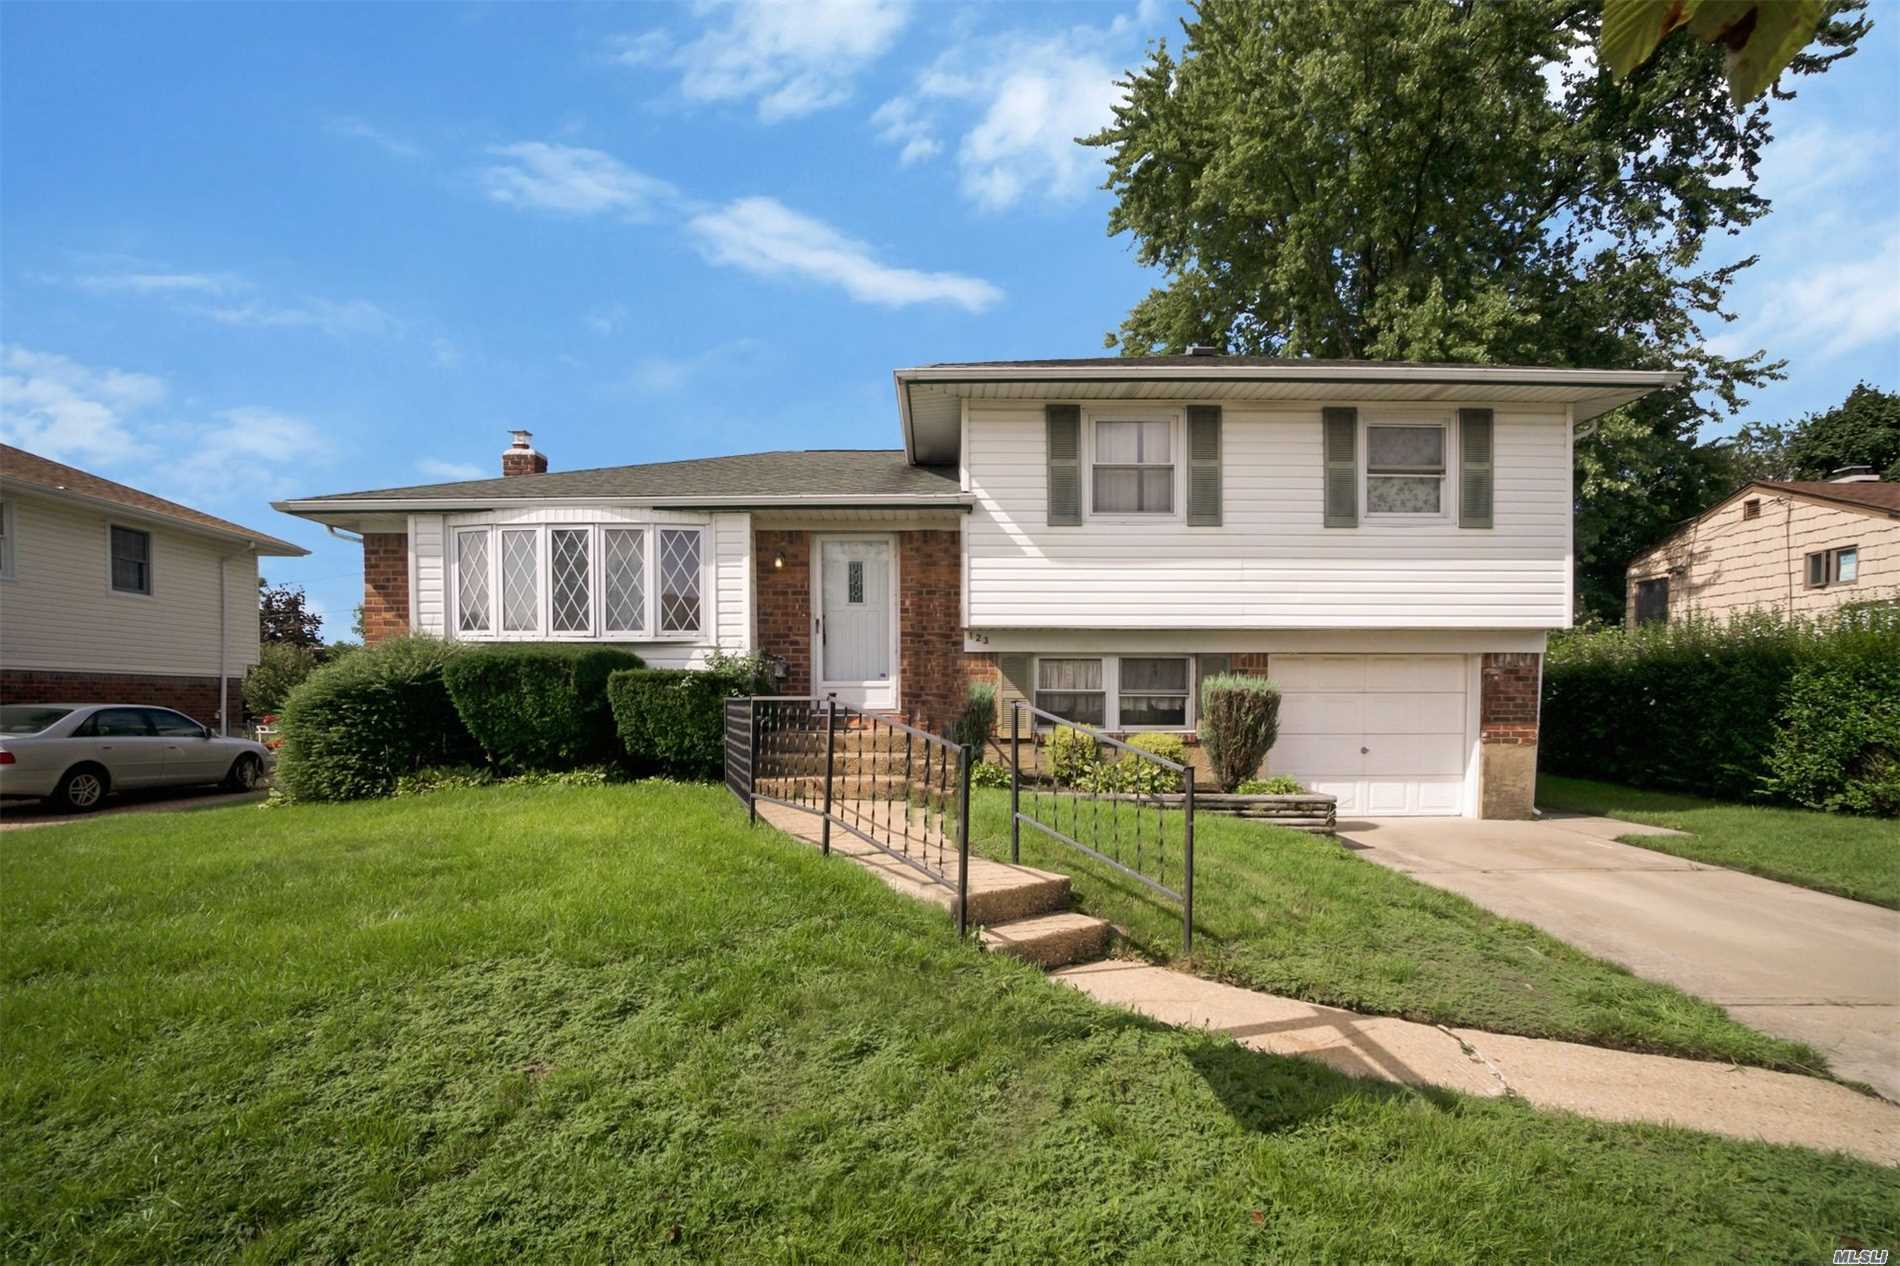 Farmingdale's Best Kept Secret. Perfect & Quiet Mid Block Location. 70 X 115 Fully Fenced Property. Not To Miss This Great Home With So Much To Offer. Centrally Located To Satisfy Your Every Need. Hardwood Floors Throughout. Andersen Windows. High Ceiling Entry. Curb Appeal. Updated Heating & Hot Water System. 200 Amp Electric. Updated Plumbing. Automatic 5 Zone In Ground Sprinkler System. Great Yard For Entertaining. See For Yourself & Make This Home Your Own. Taxes W/Star $7, 691.